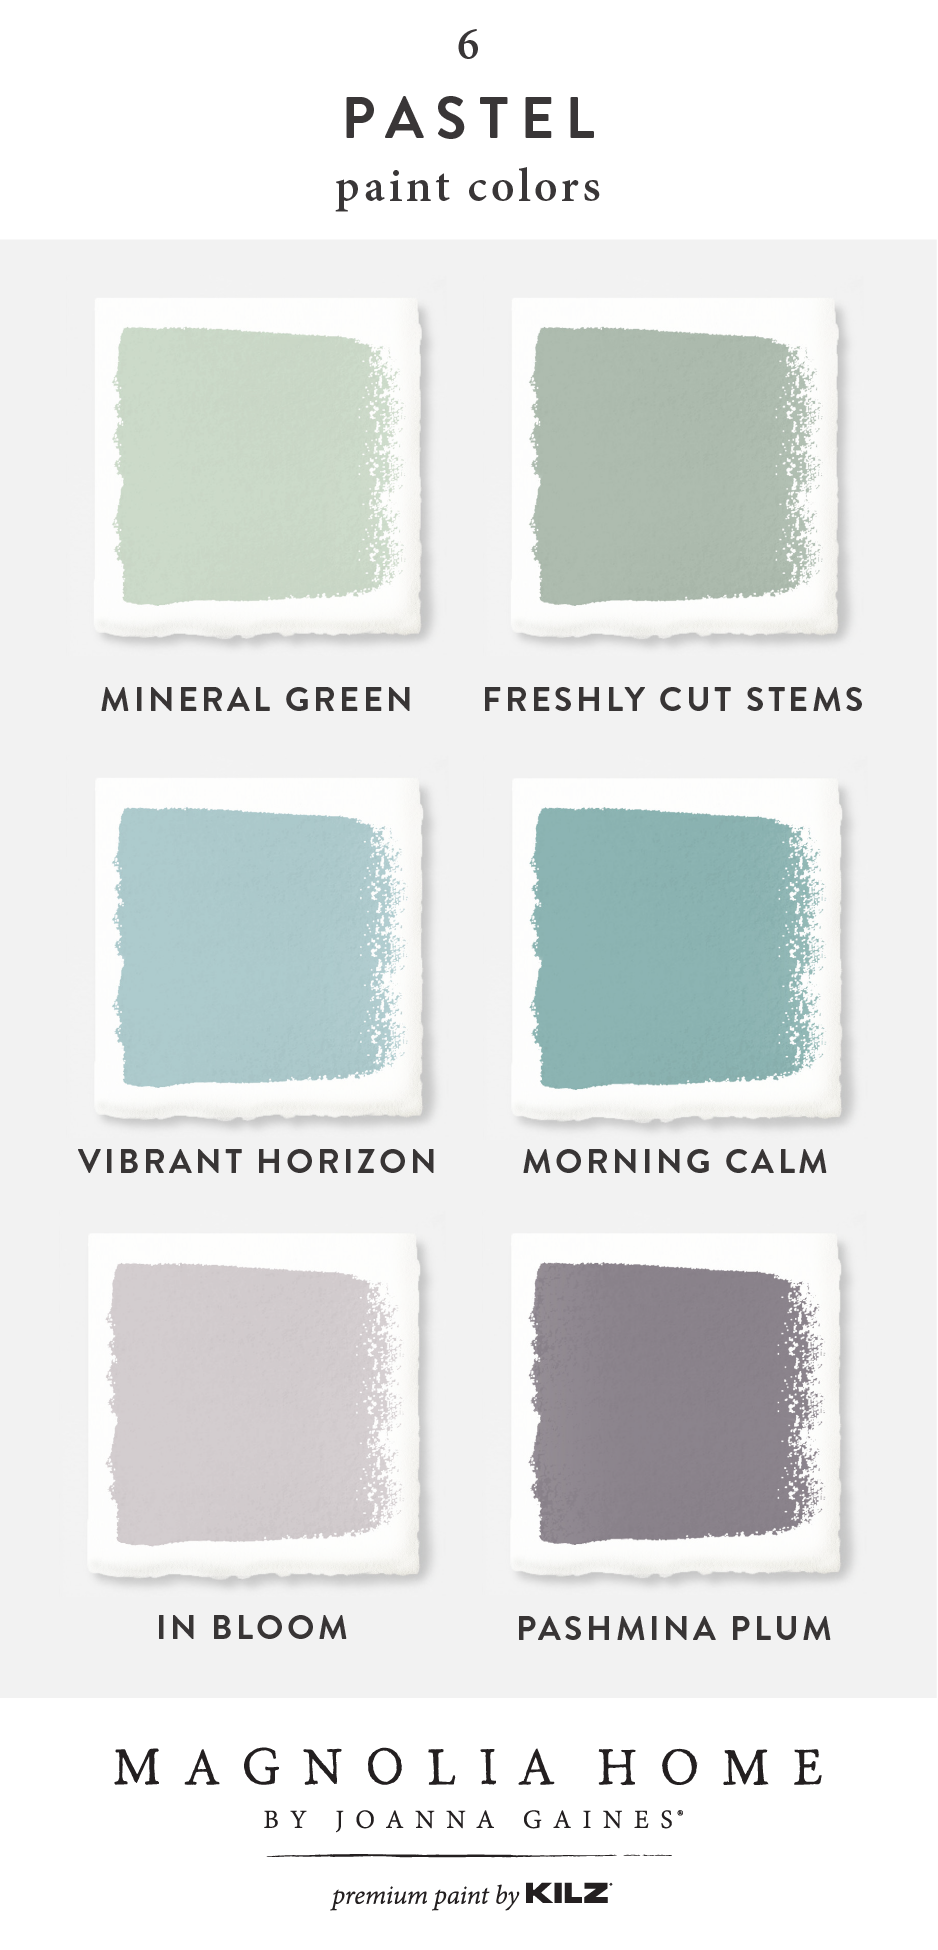 Add A Splash Of Pastel Color To The Interior Design Of Your Home